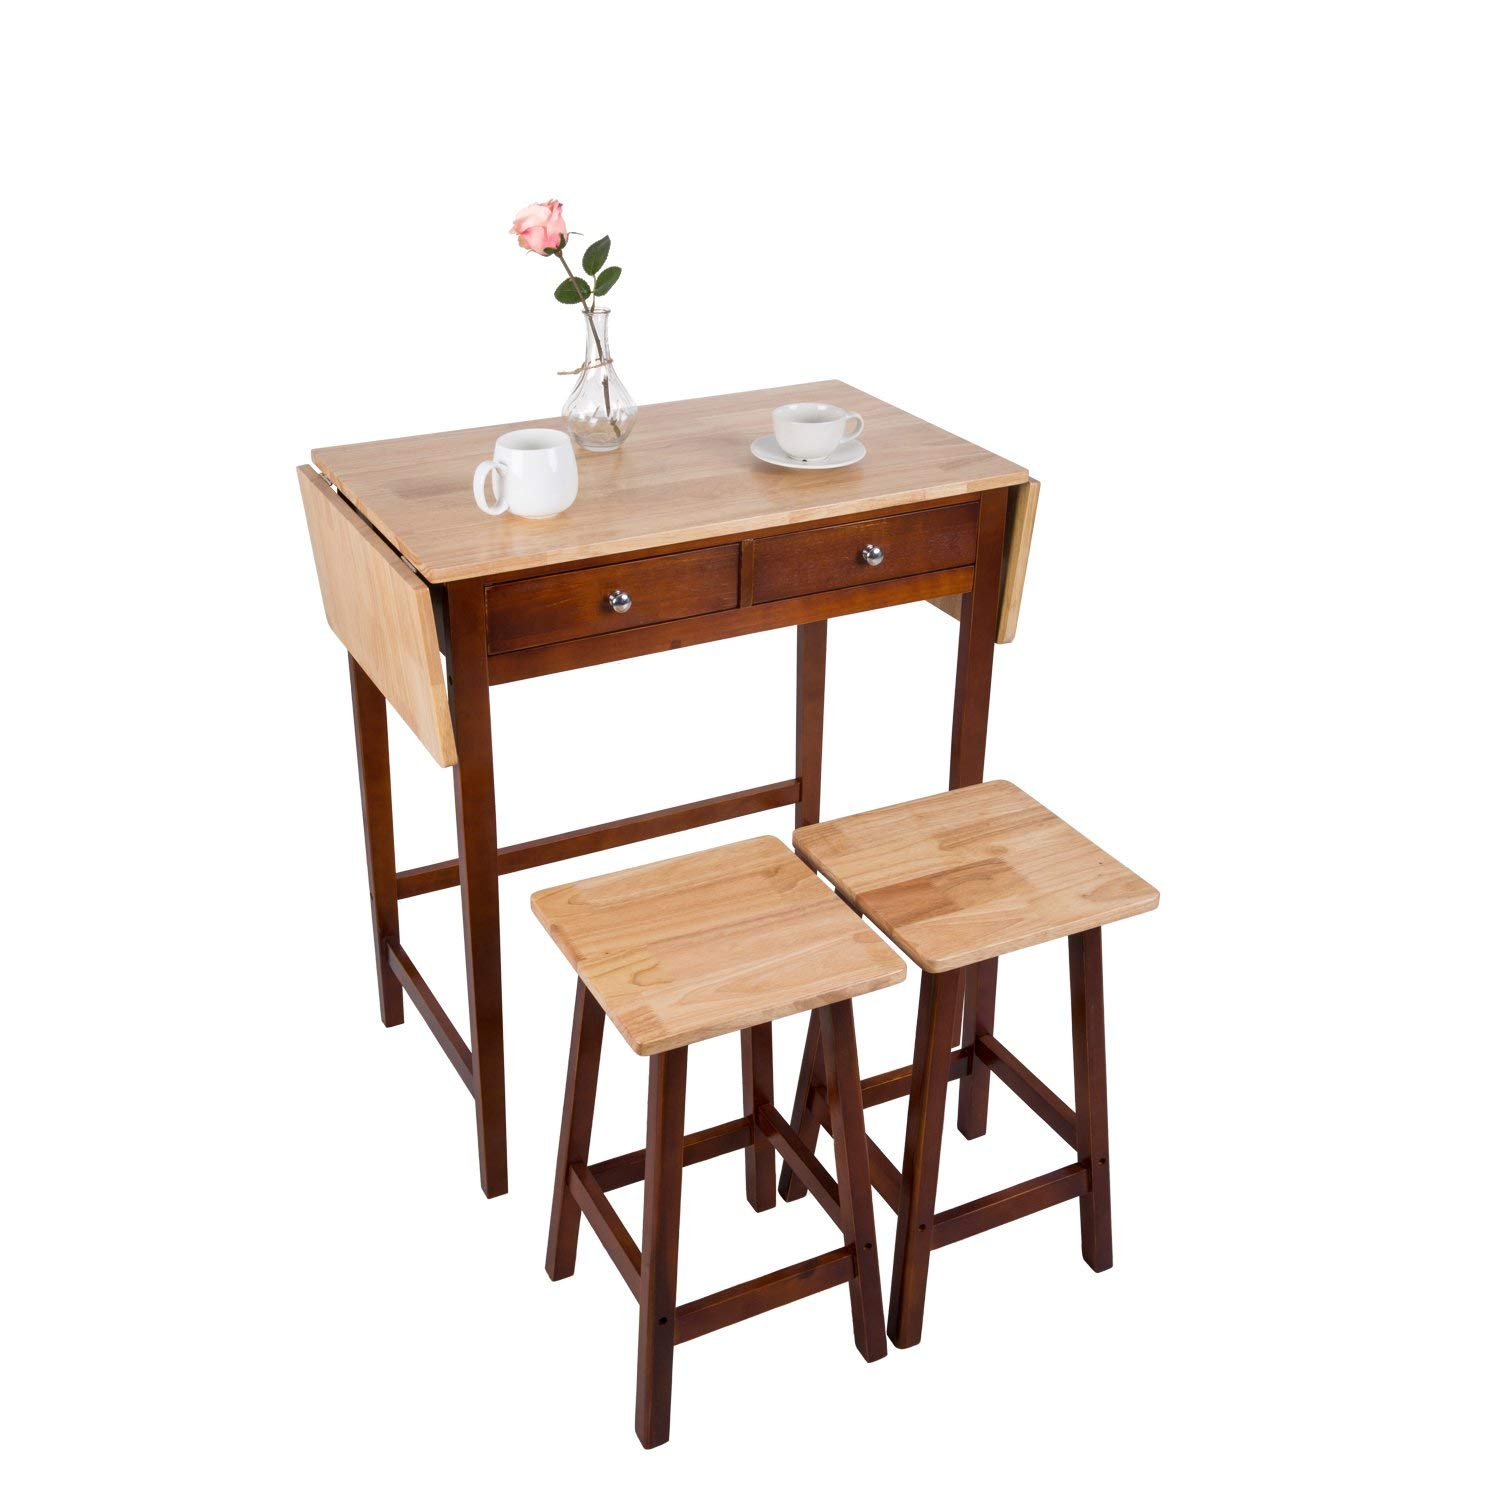 Peach Tree Foldable Kitchen Table 3-Piece Dining Set Wooden Home Furniture Rolling Kitchen Island 2-Side Foldable Table Drop Leaf, Breakfast Bar w/ 2 Stools